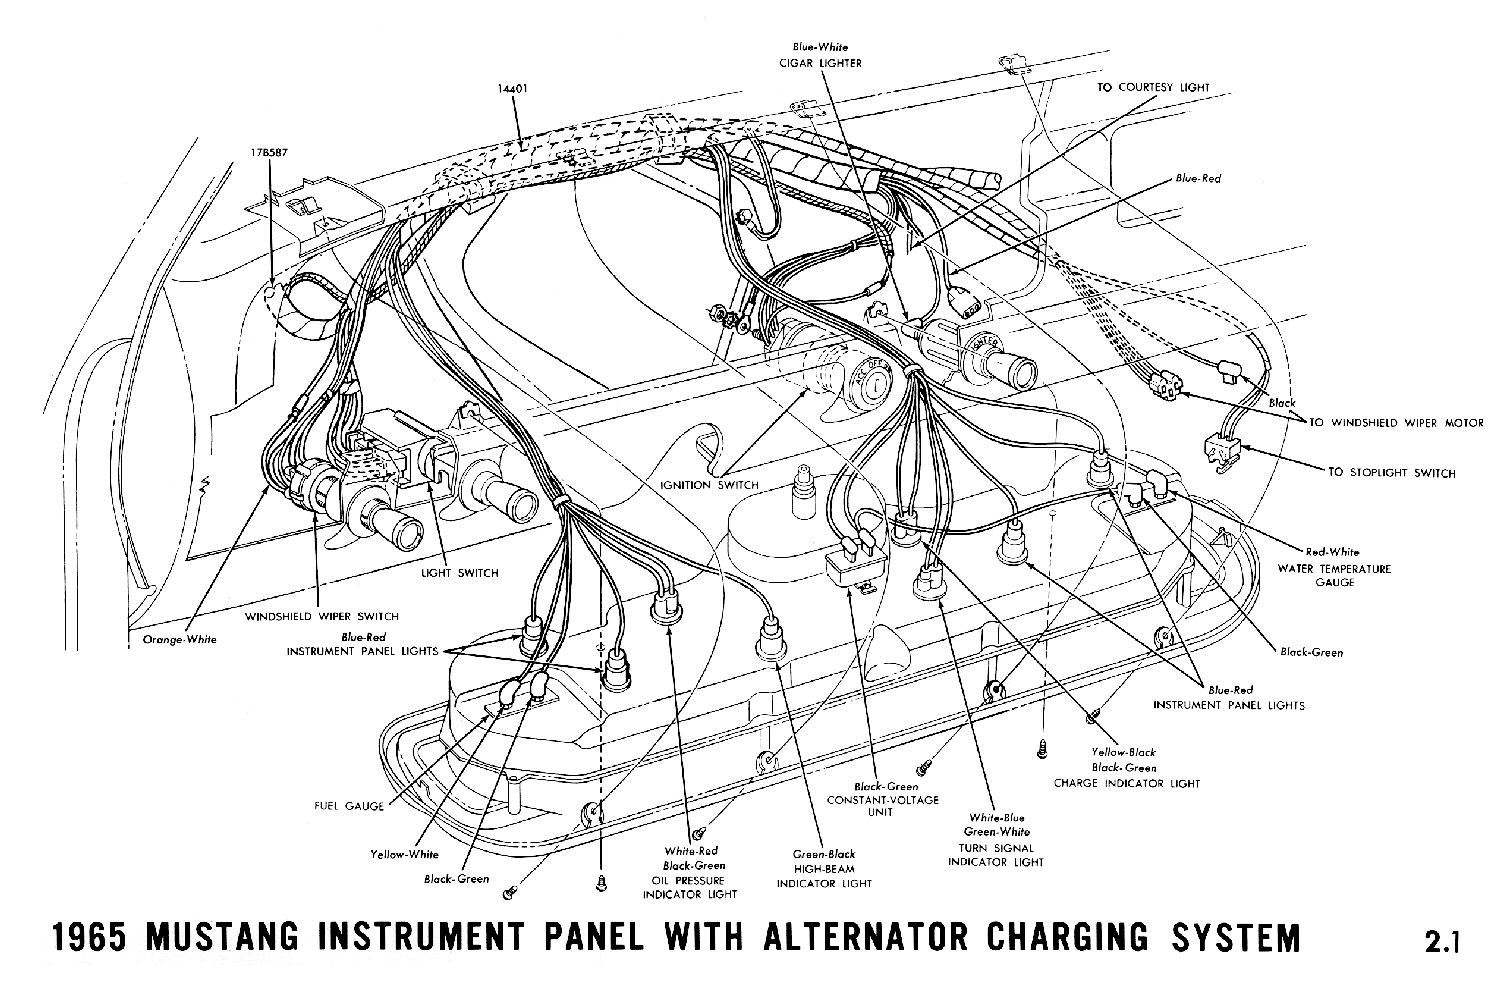 1965 Mustang Wiring Diagrams Average Joe Restoration Need To See A Wireing Diagram Of Wiper Motor Switch For Instrument Cluster Connections